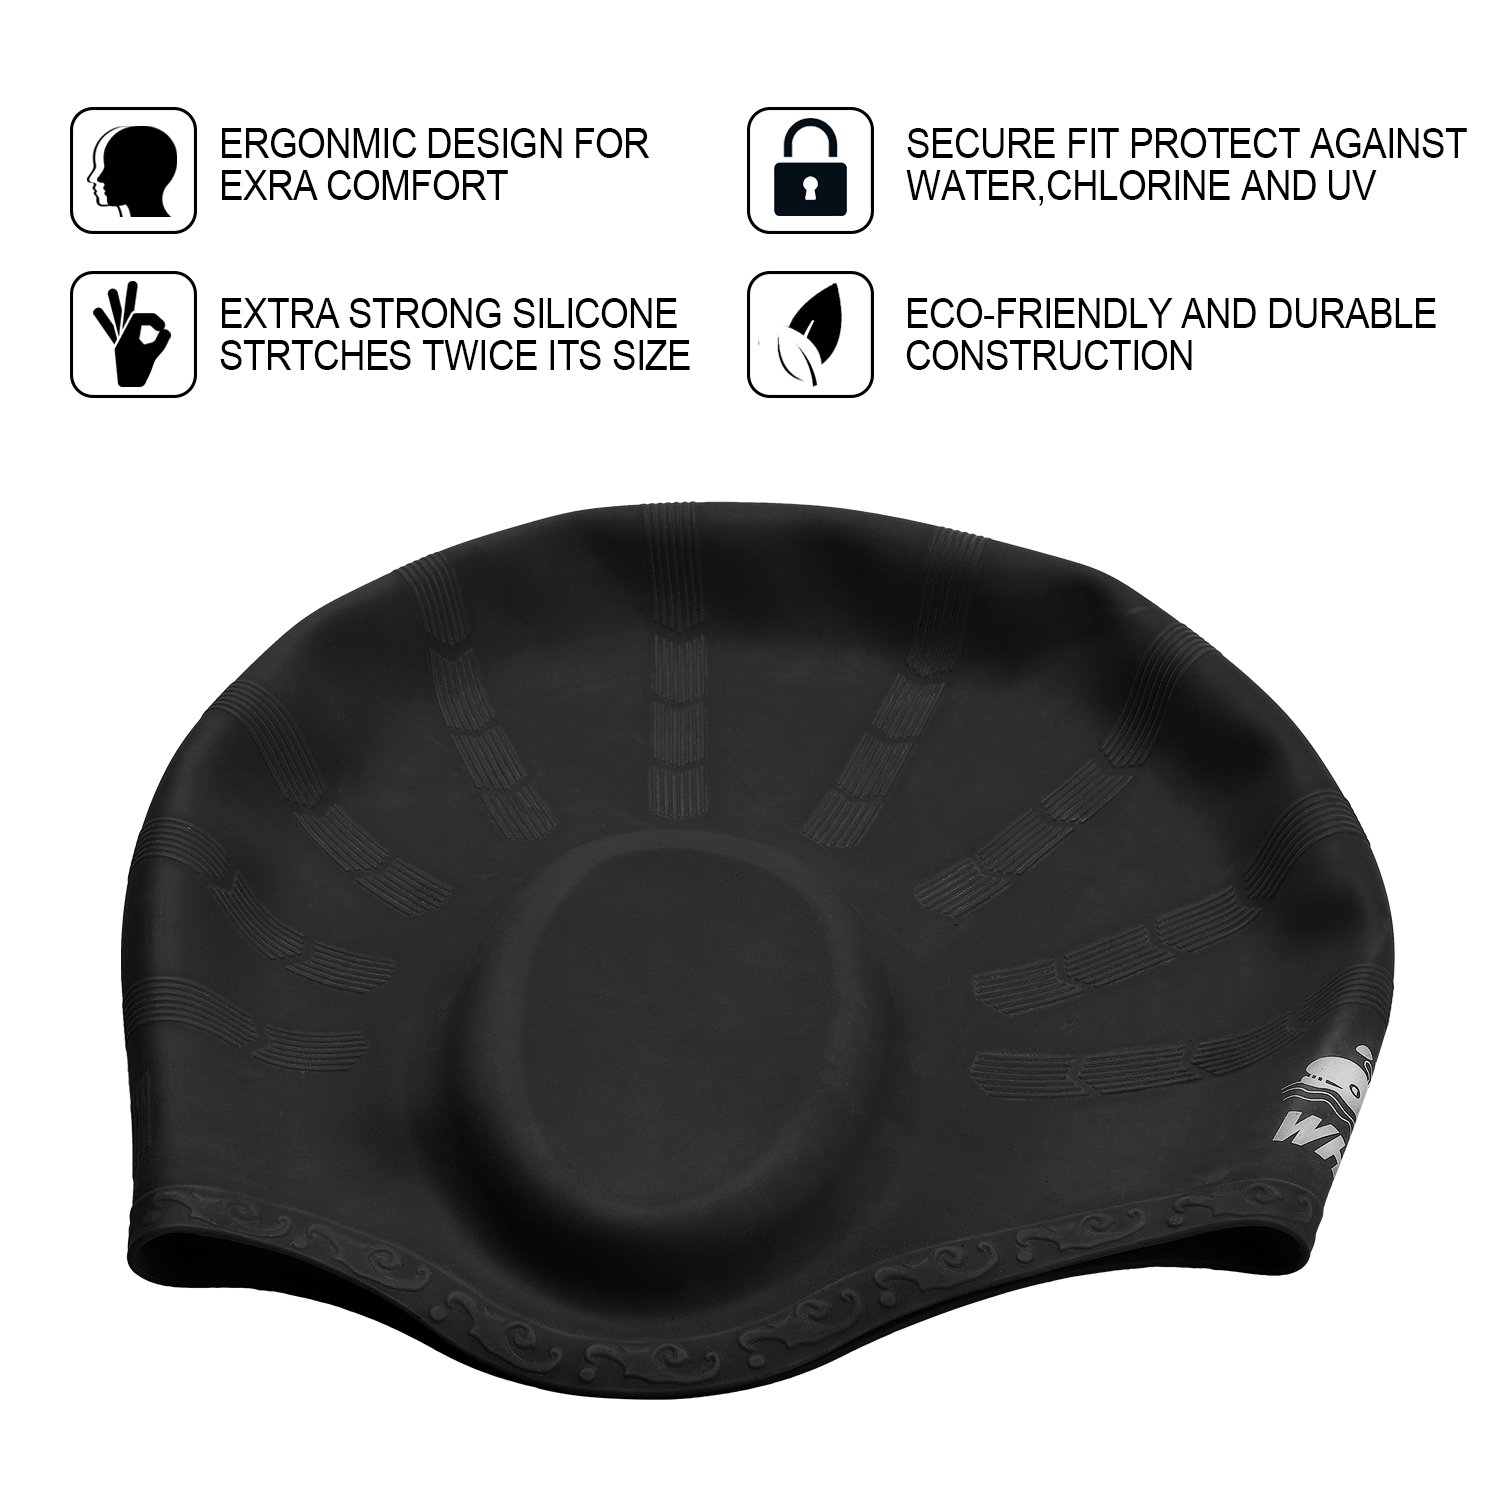 Cover Ears Swim Caps for Long Hair 100% Silicone Swimming Hat for Unisex Adult KIds Reduce Water Intake Makes Your Hair Clean(black)